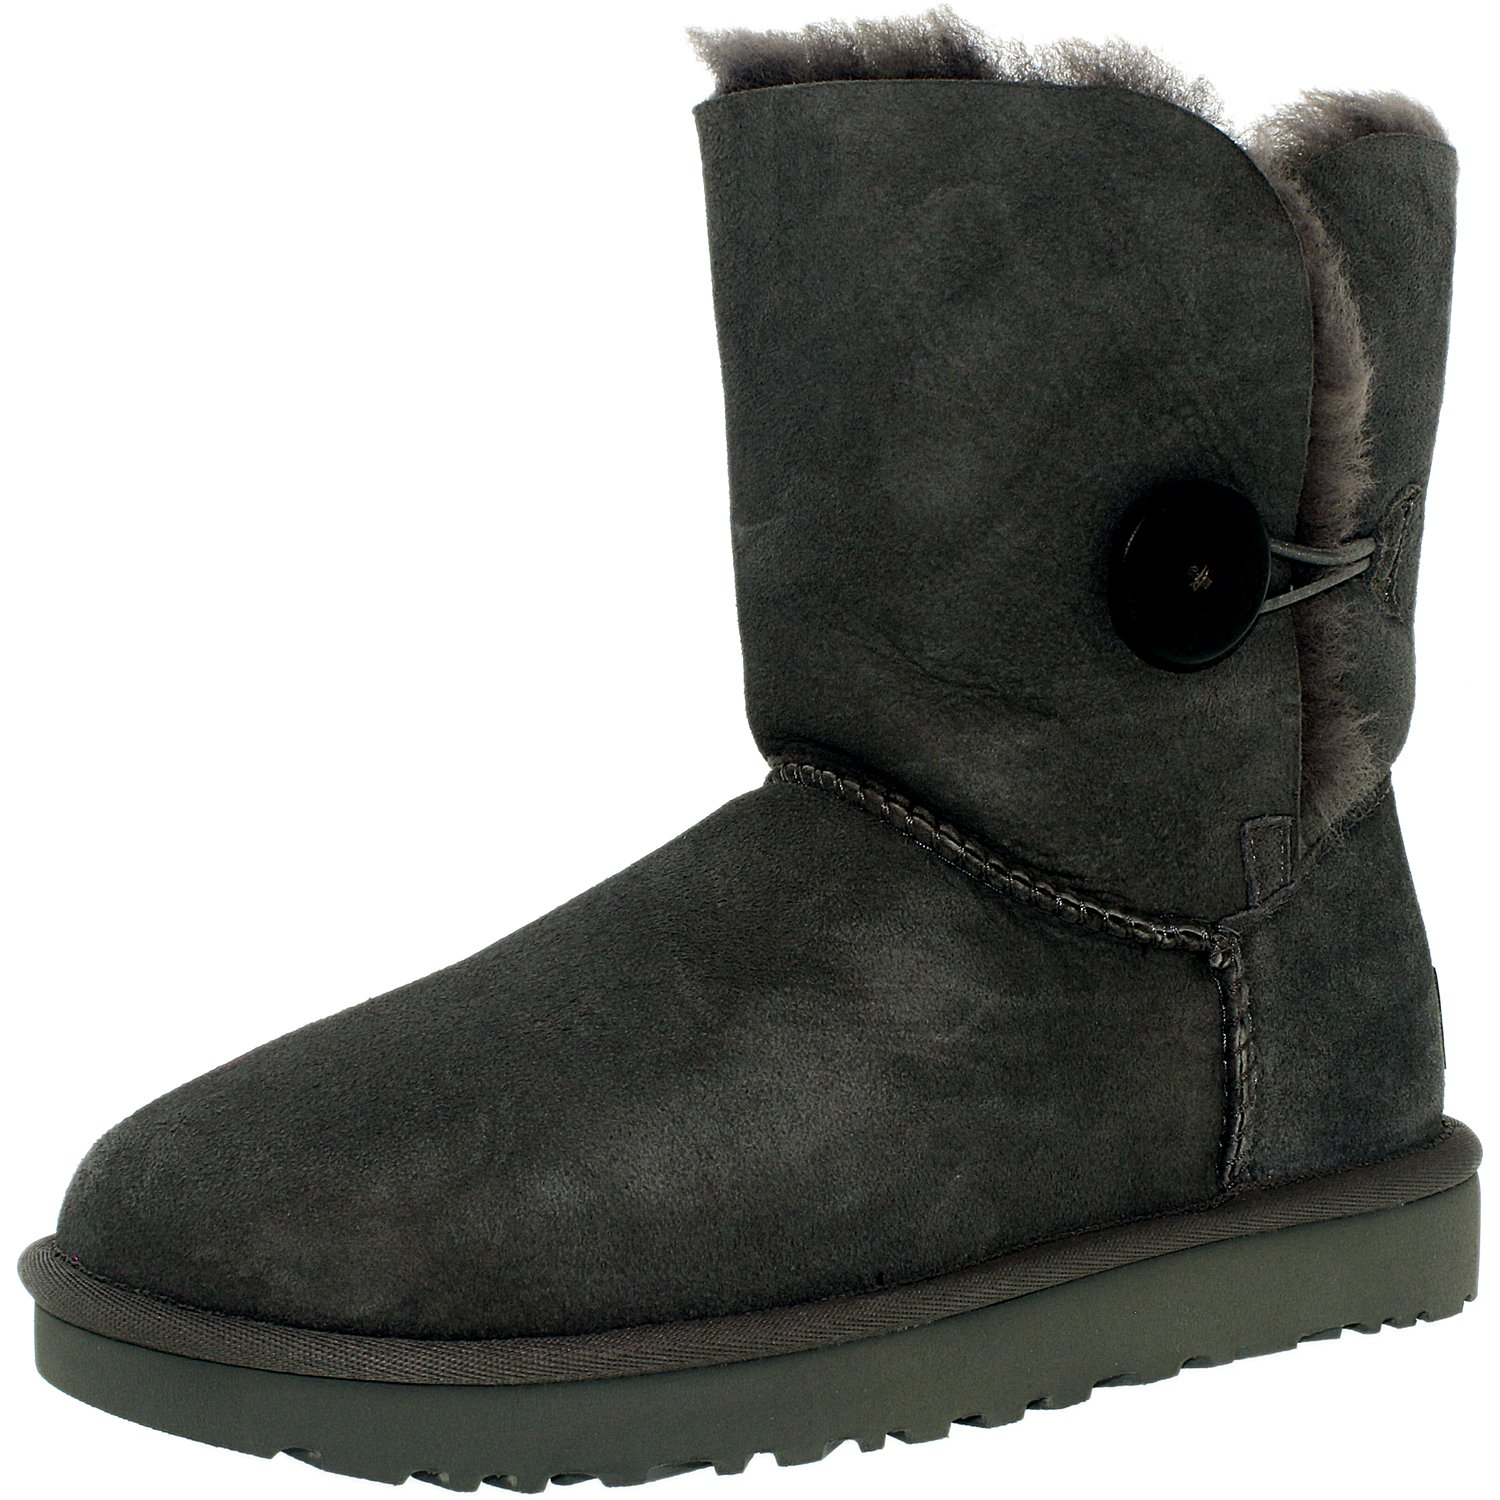 Ugg Women's Bailey Button II Grey High-Top Sheepskin Boot...